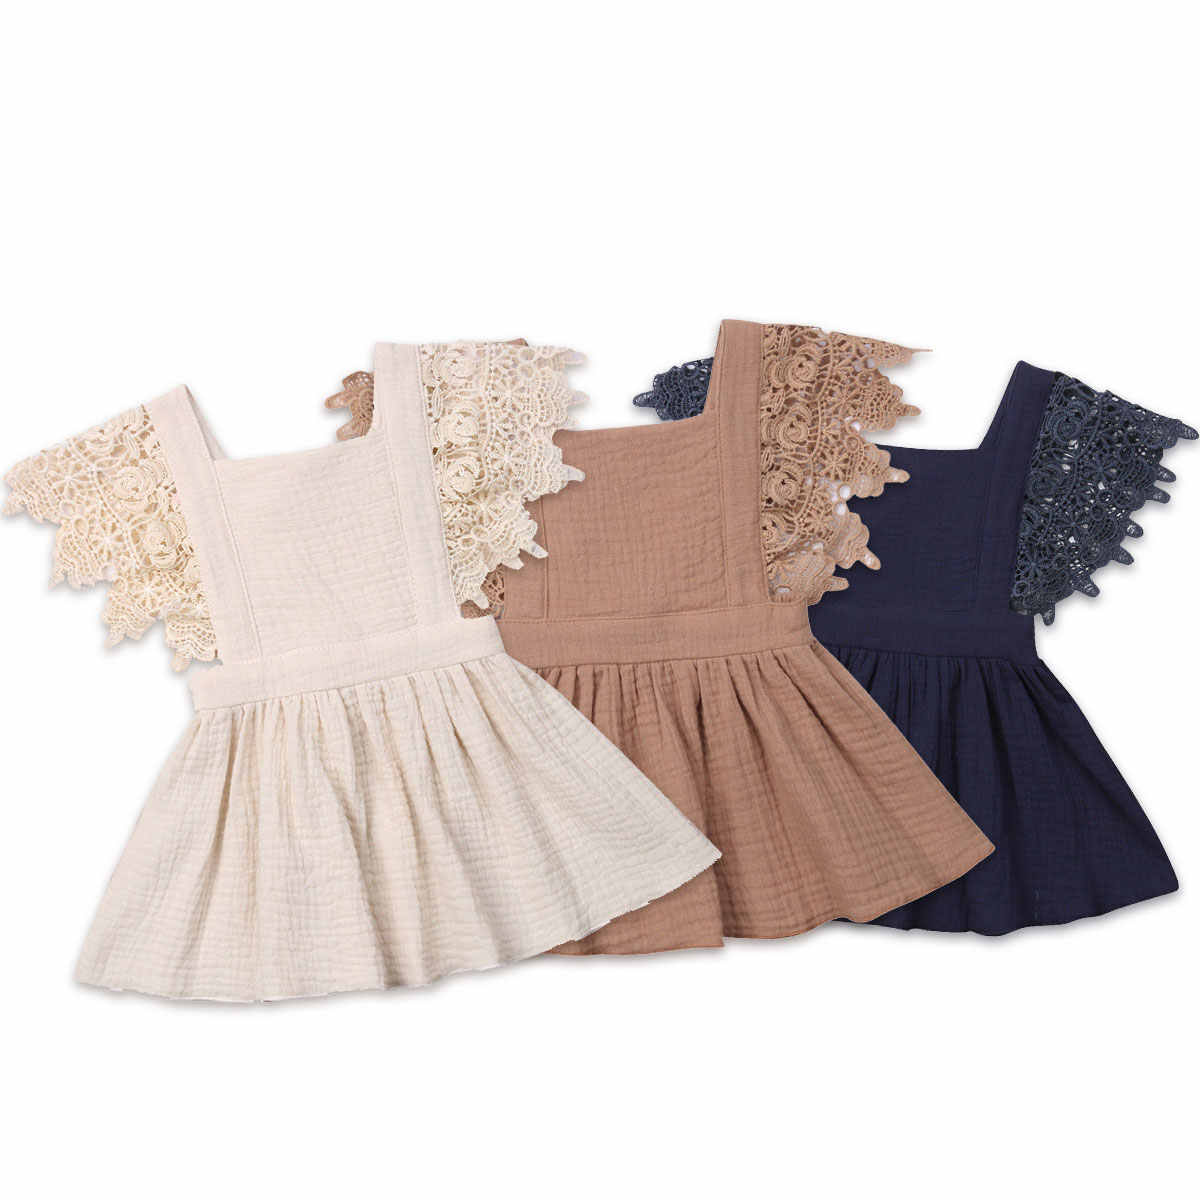 7cc5a66f0f Vintage Infant Newborn Baby Girls Dress Summer Lace Ruffles Princess Baby  Girl Dresses Party Travel Holiday